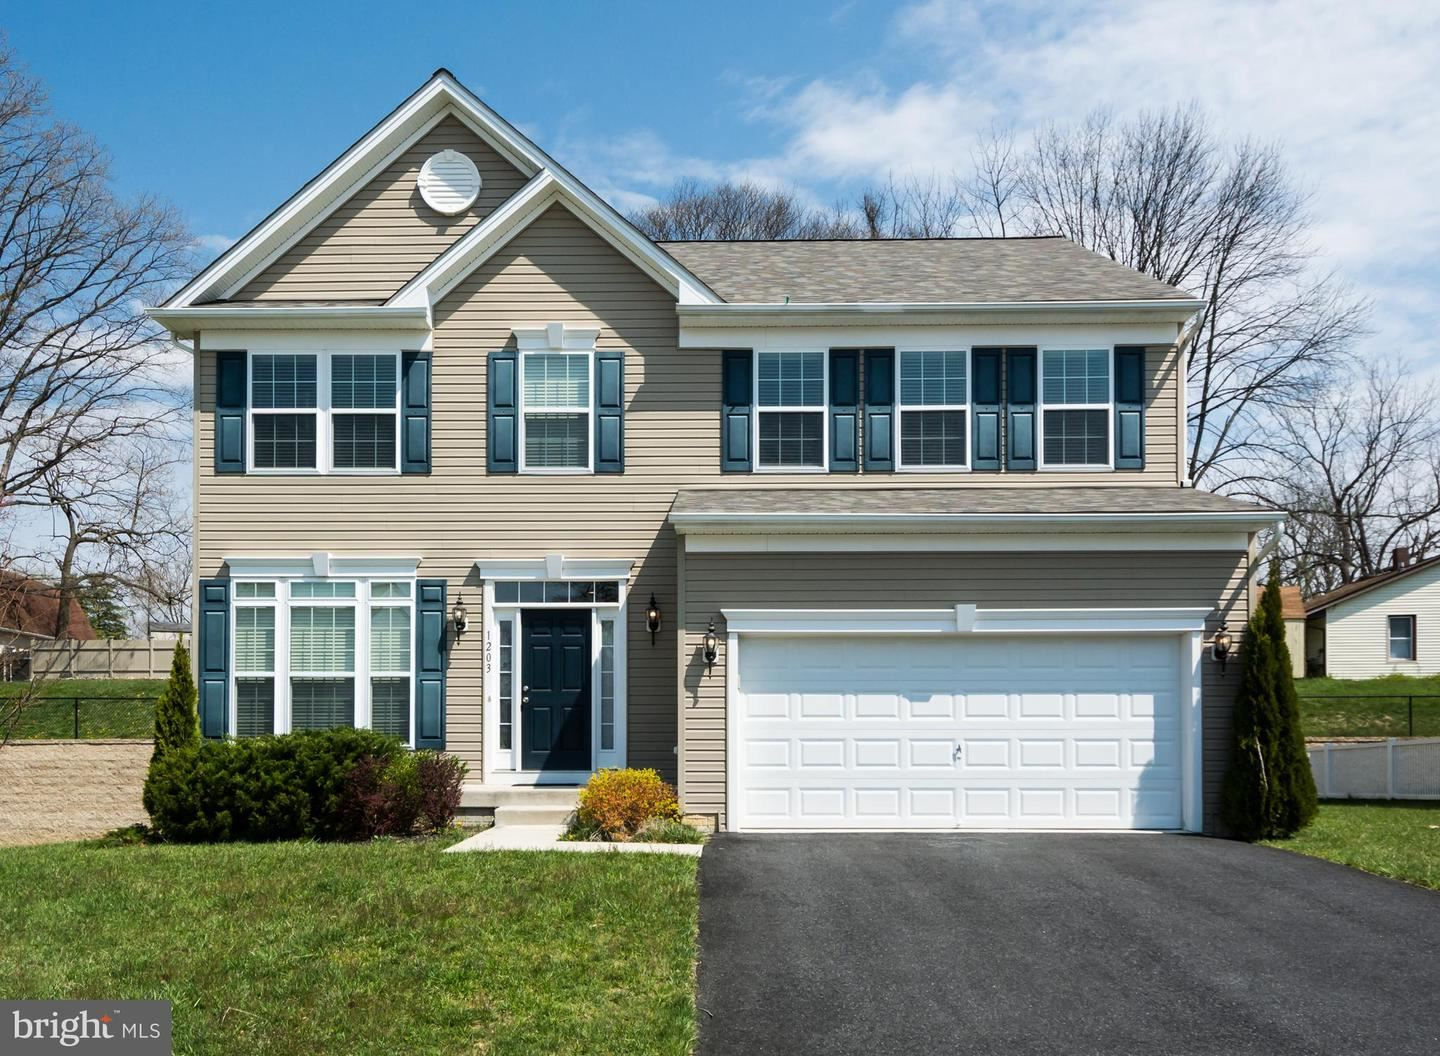 1203 WISHINGWELL CT, Bel Air, MD 21015 - MLS#: MDHR258328